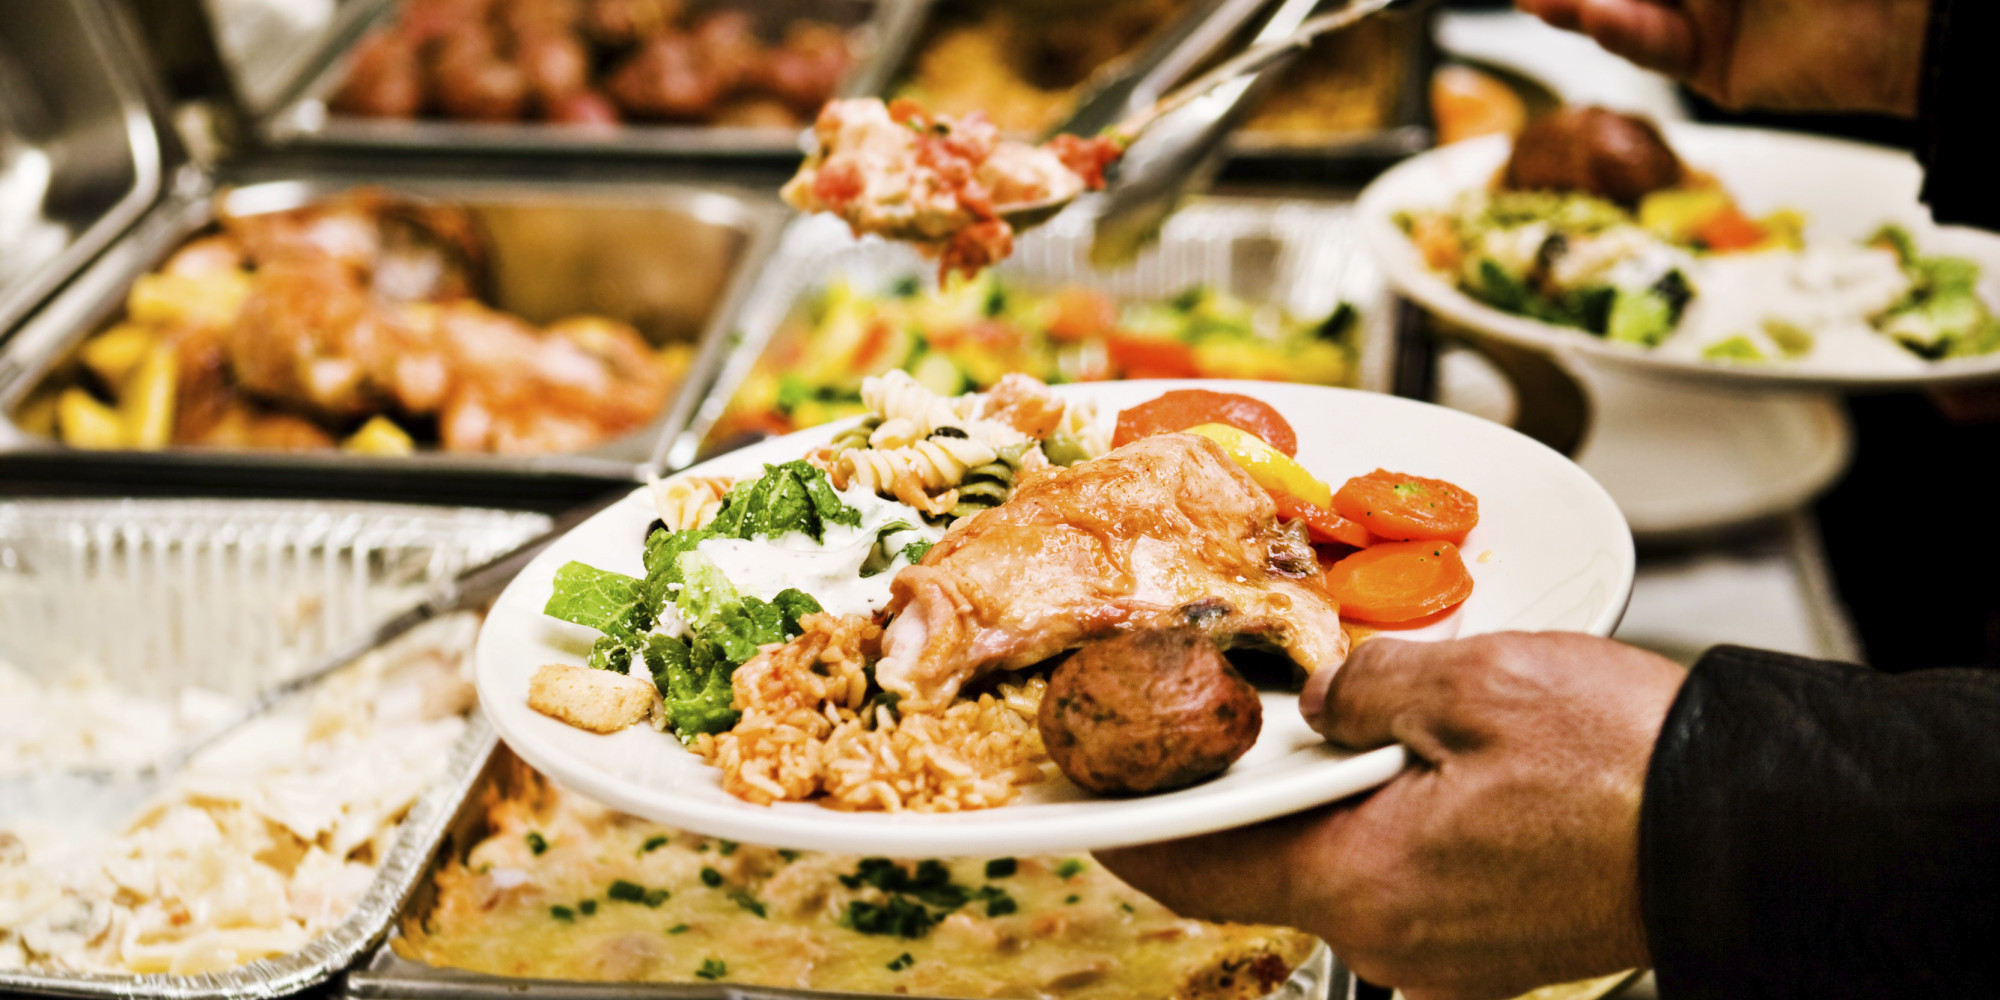 Golden Corral Easter Dinner  Top 10 Holiday Buffet Ideas Top Inspired